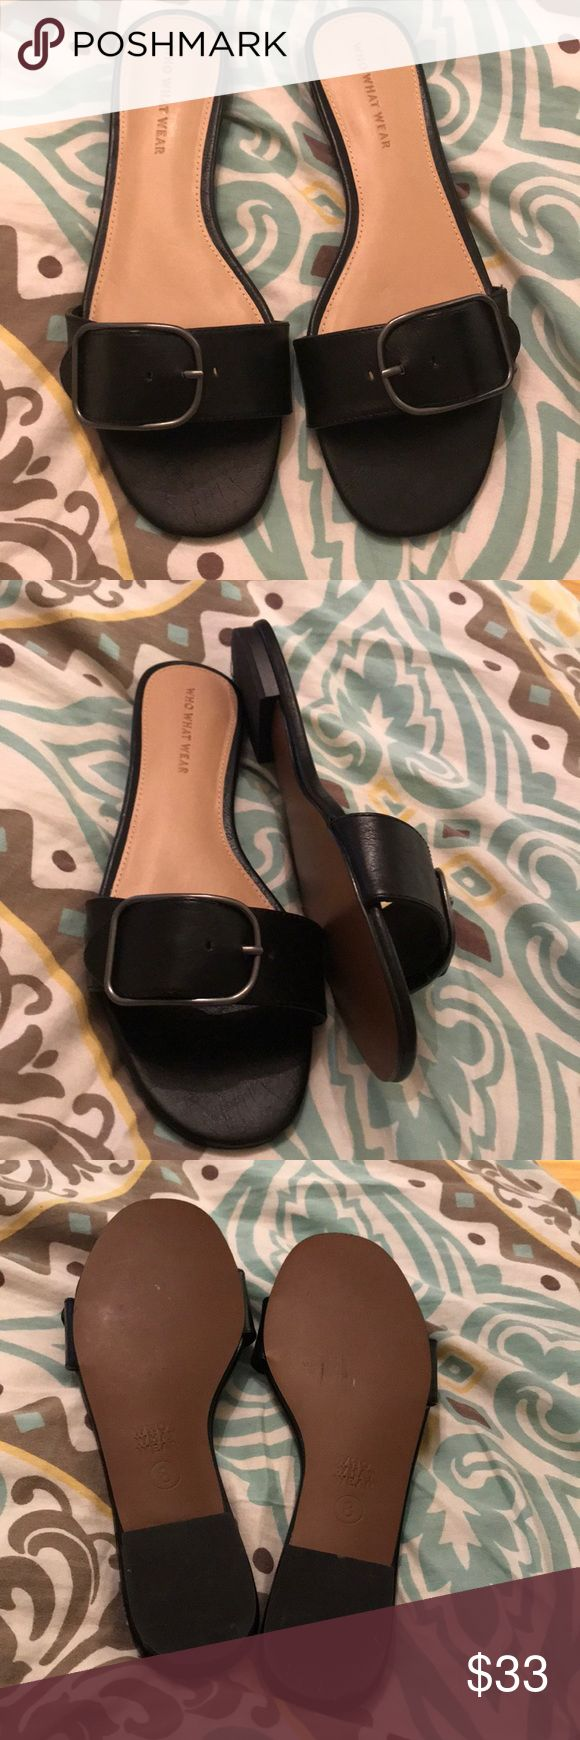 Sandals Who wants where new sandals Caesars size 8 black Who want where Shoes Sandals